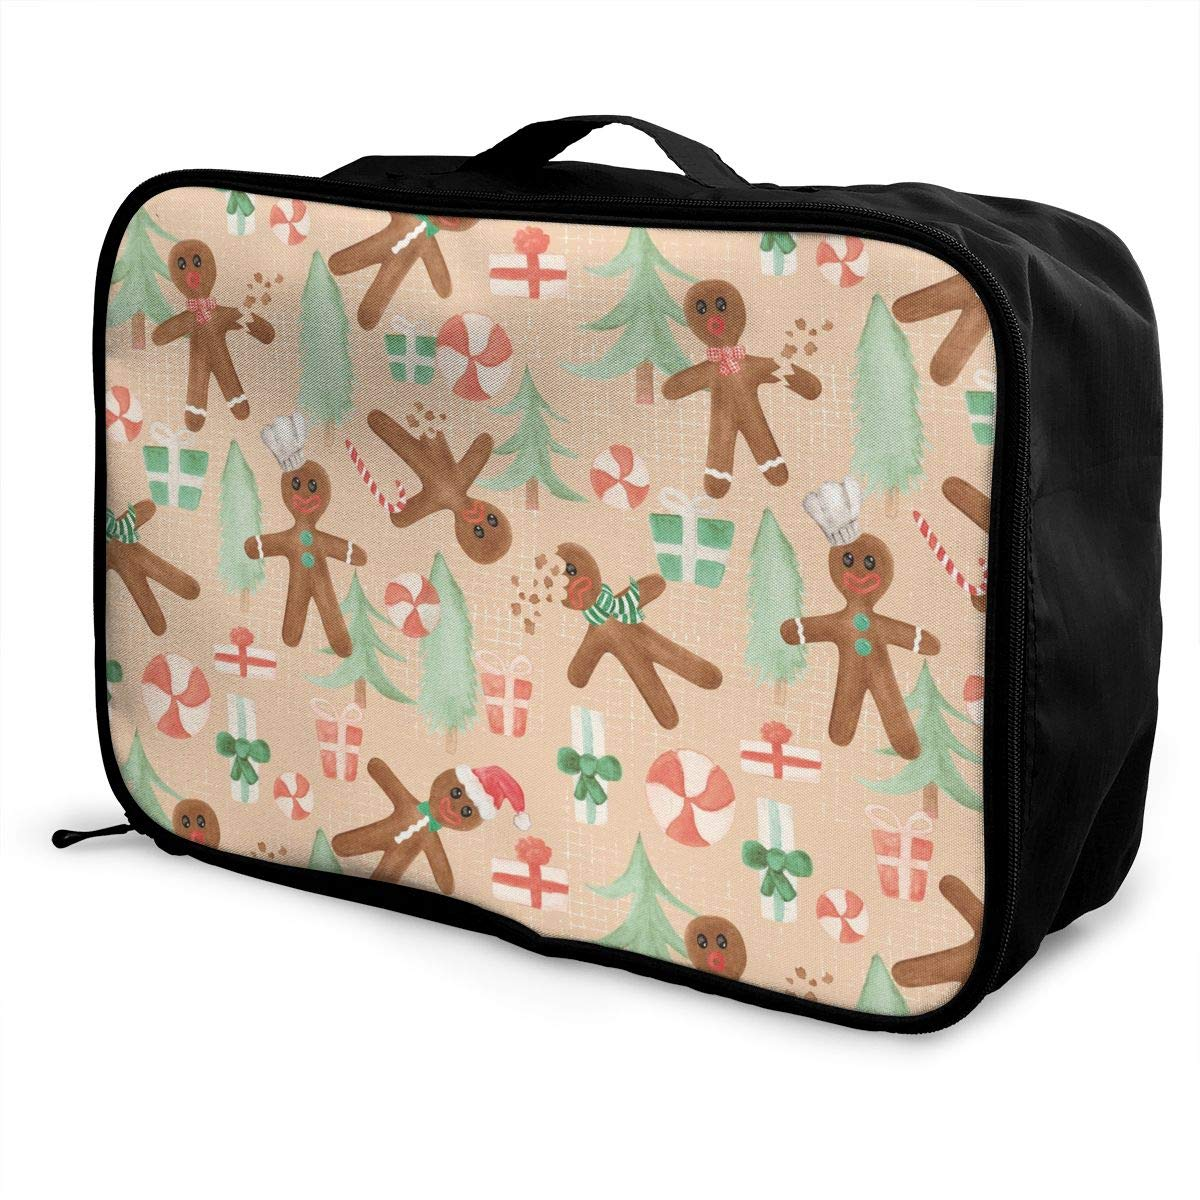 YueLJB Gingerbread Men Lightweight Large Capacity Portable Luggage Bag Travel Duffel Bag Storage Carry Luggage Duffle Tote Bag